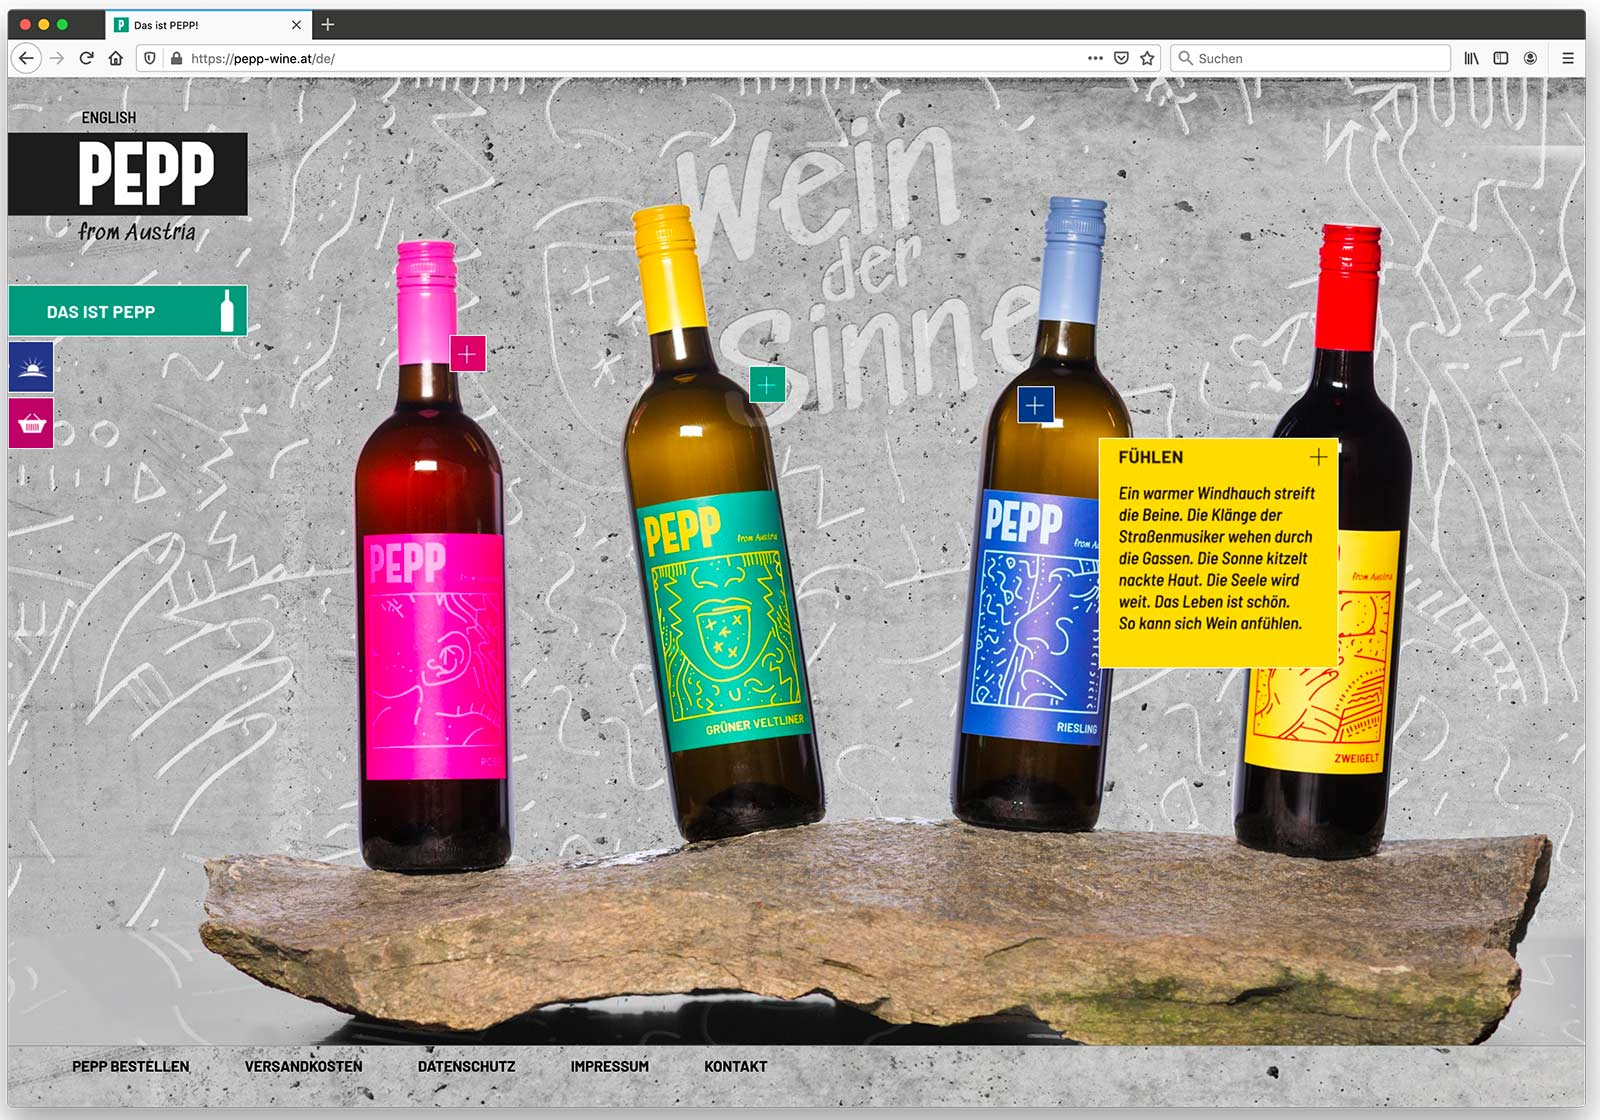 Website pepp-wine.at